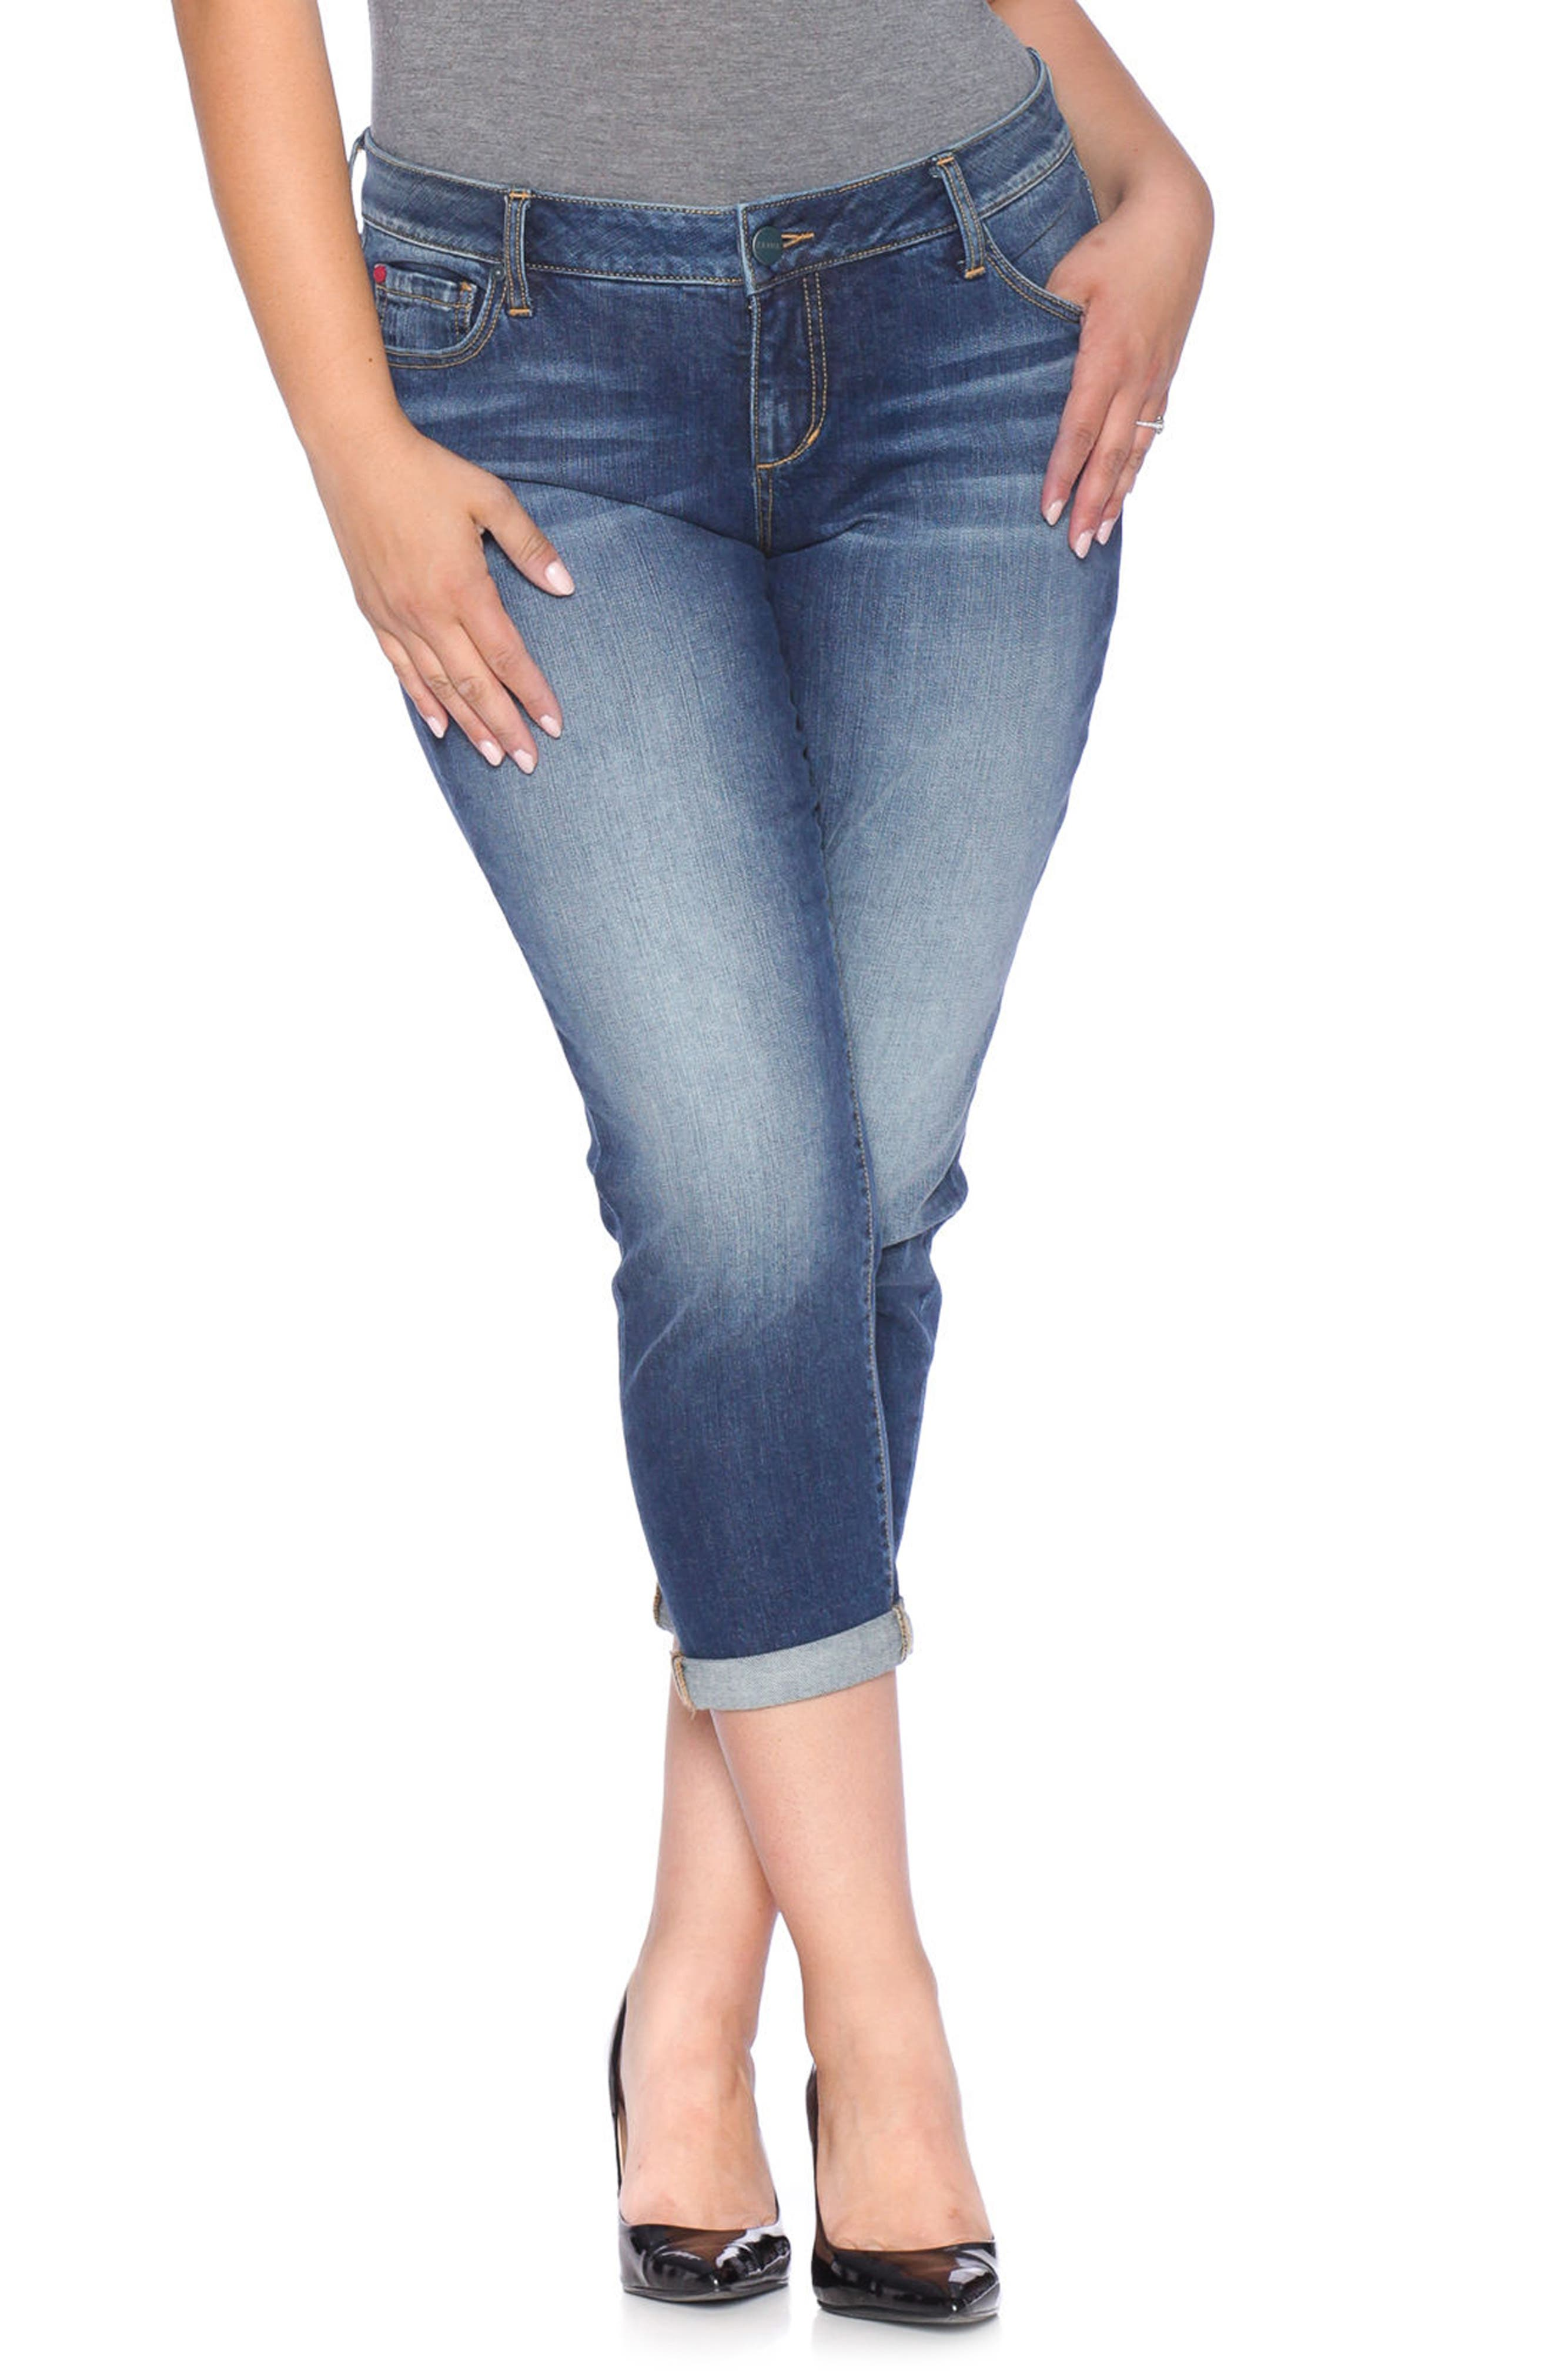 Main Image - SLINK Jeans Easy Fit Mid-Rise Skinny Jeans (Val) (Plus Size)